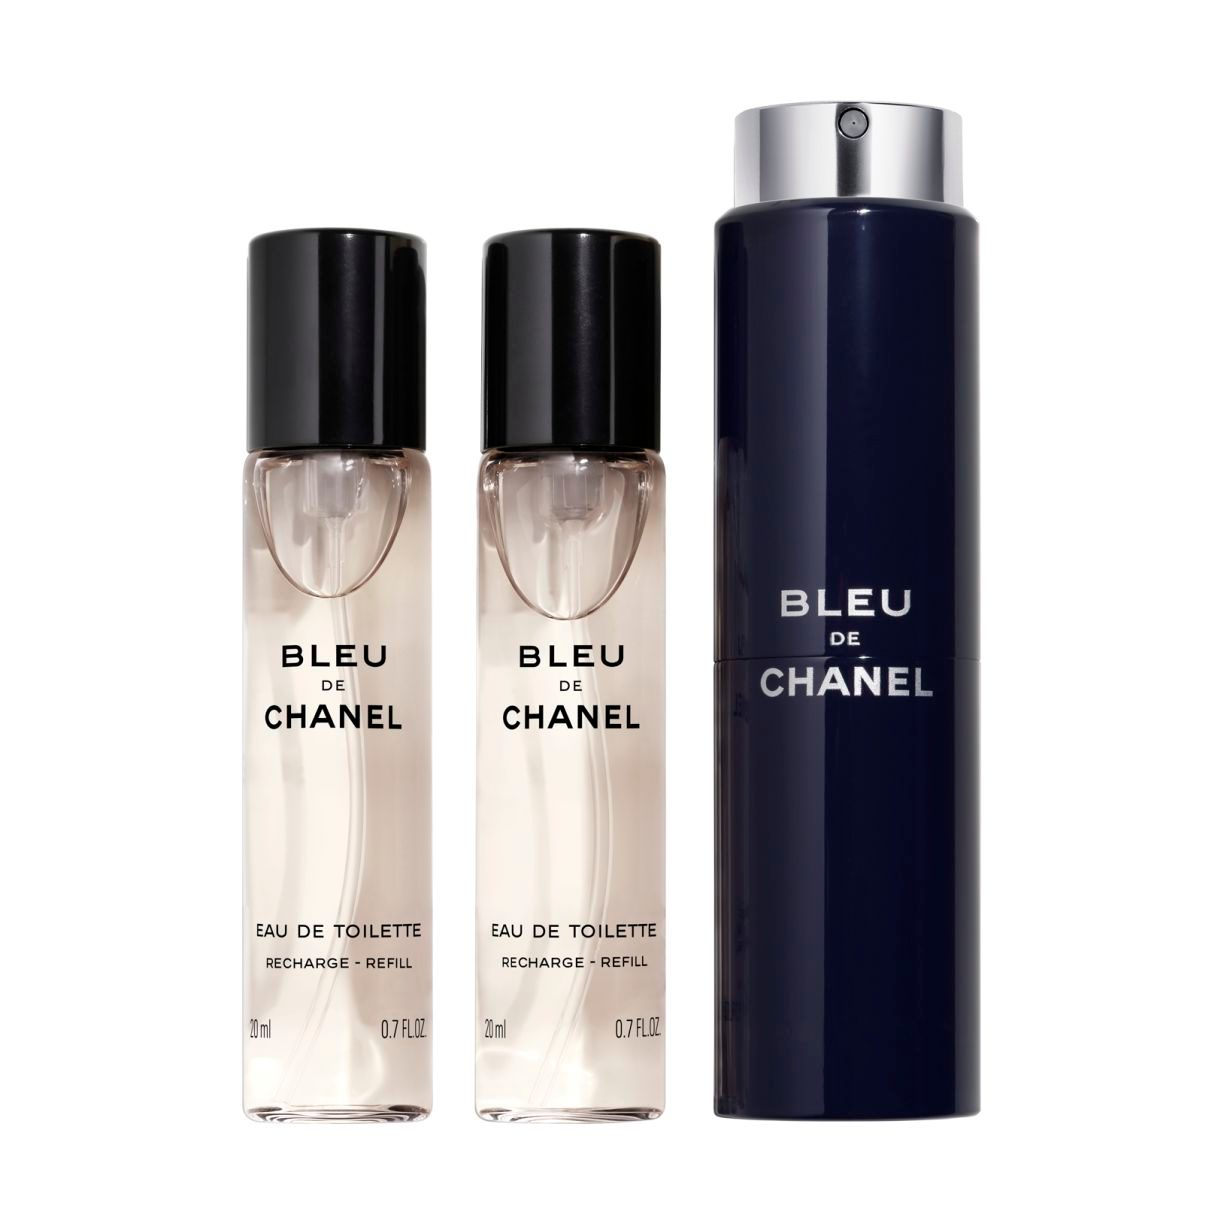 BLEU DE CHANEL EAU DE TOILETTE REFILLABLE TRAVEL SPRAY 3x20ml